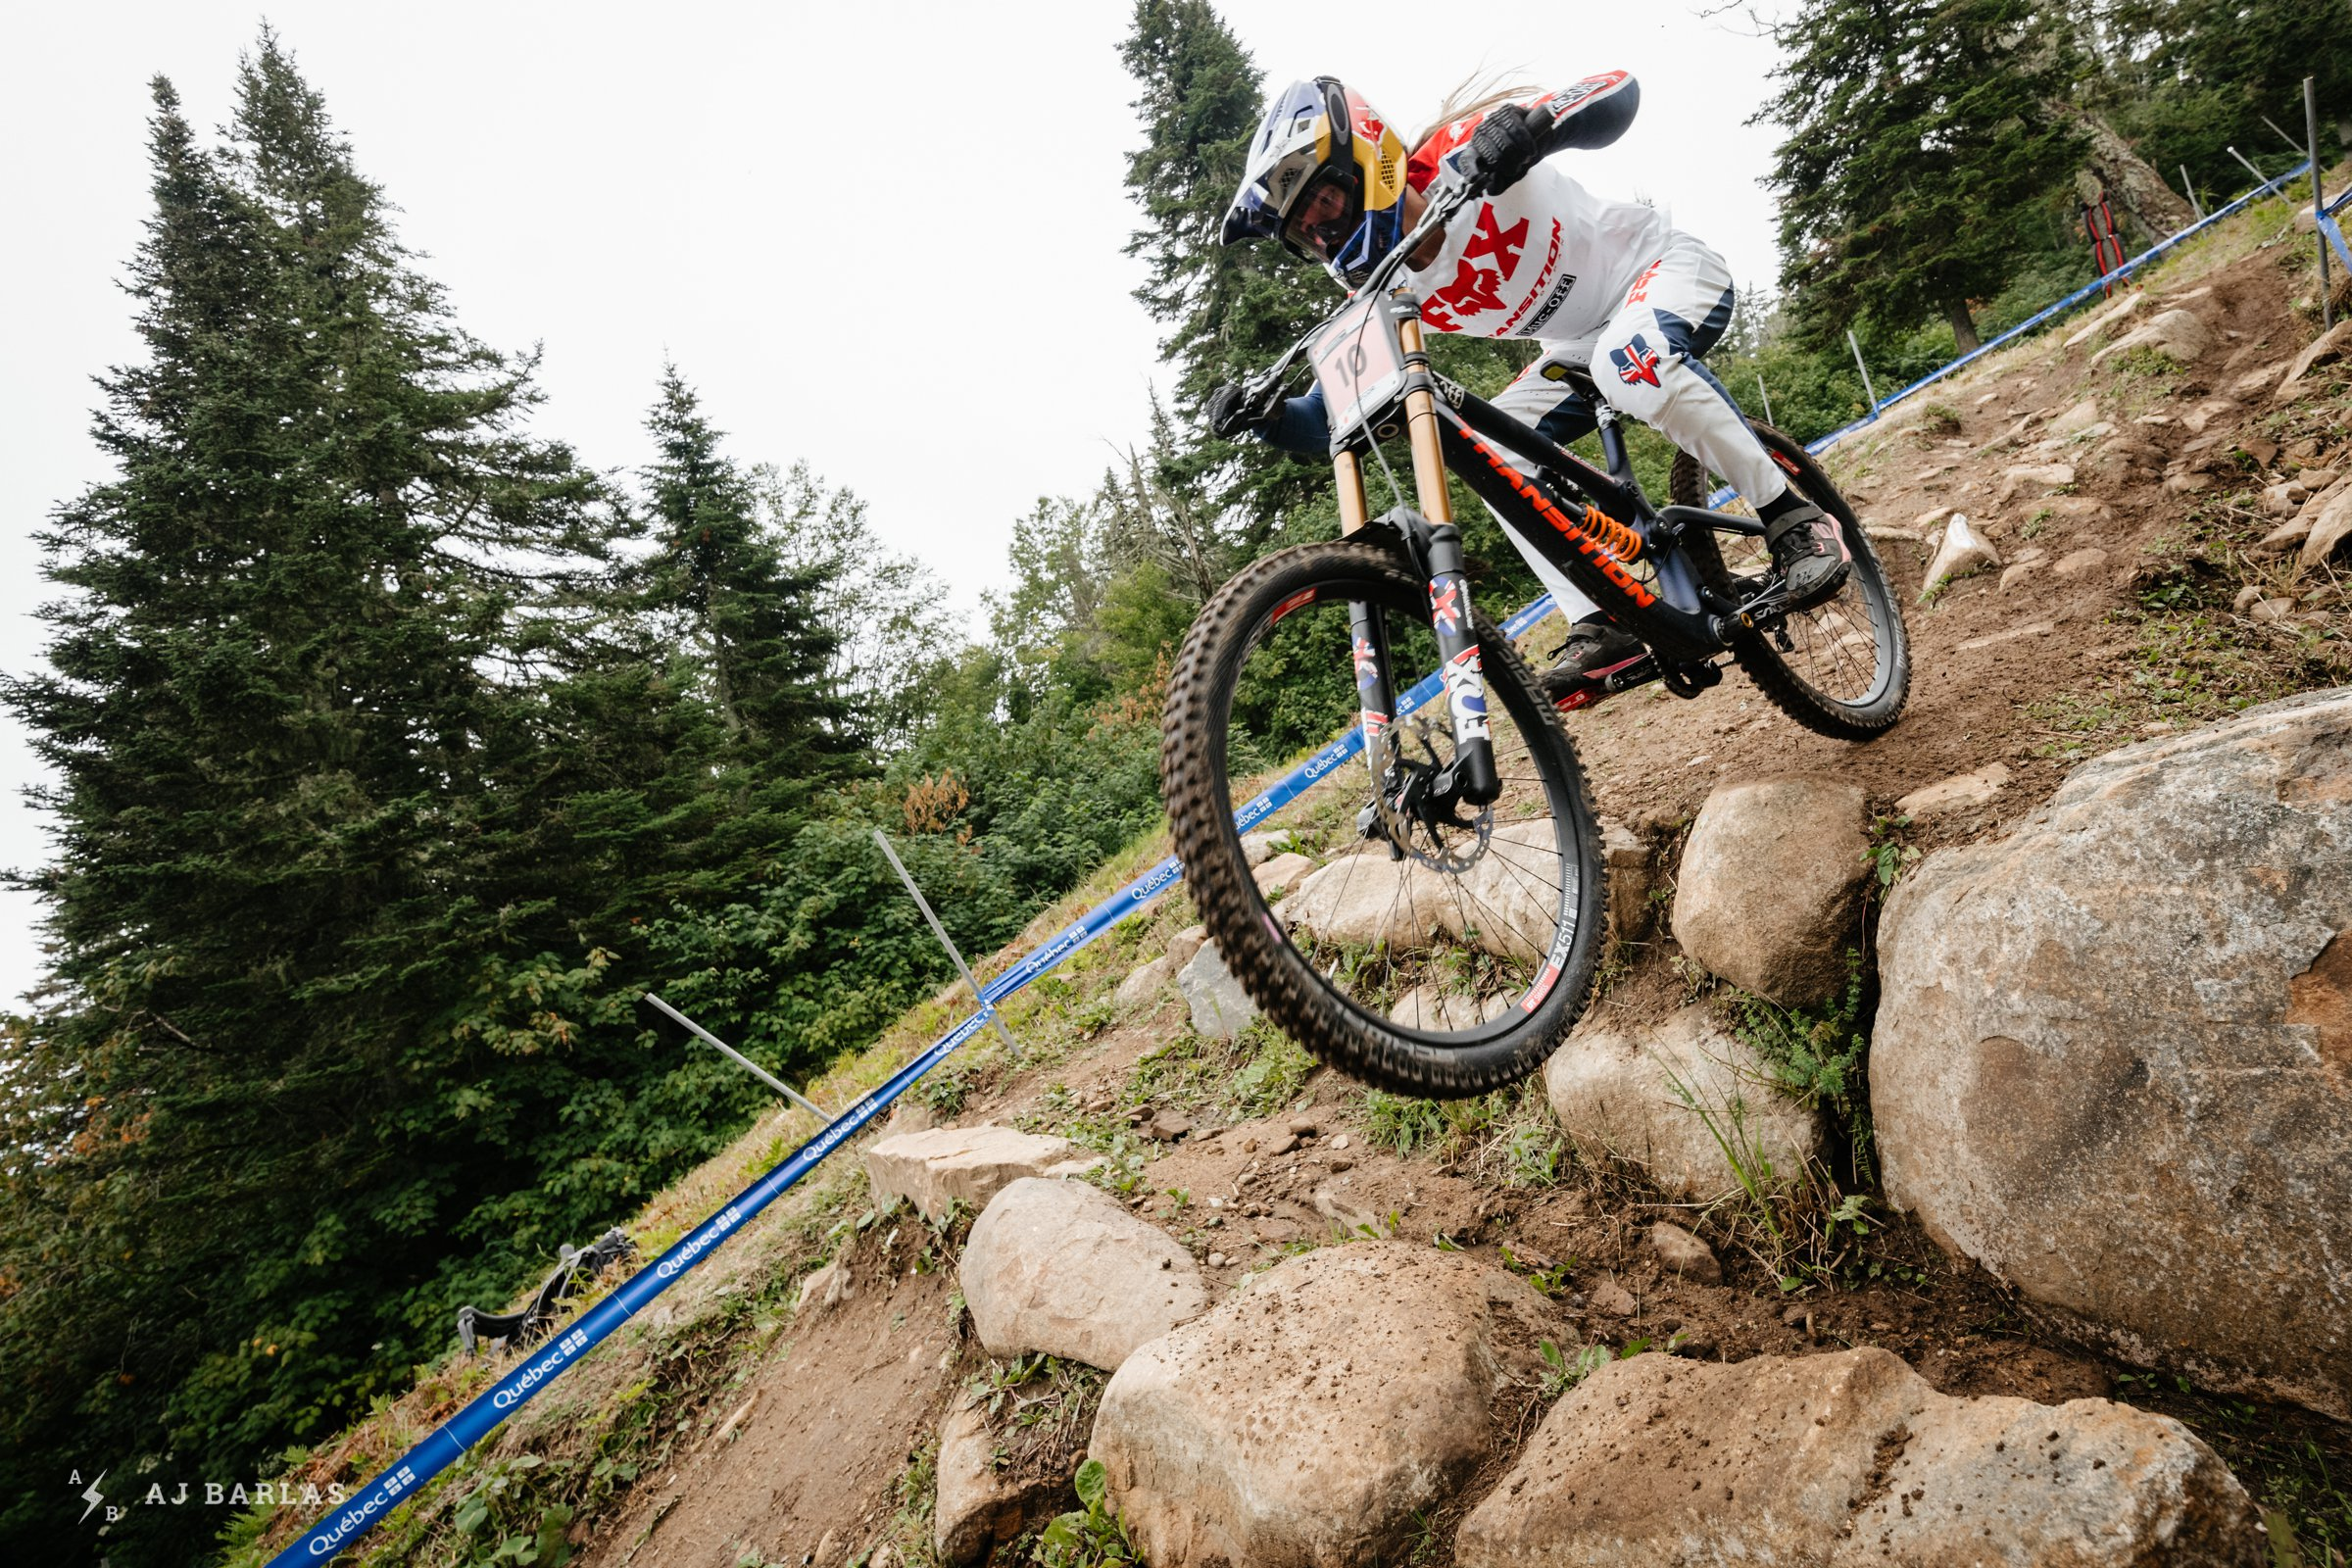 Tahnee Seagrave back racing at the Mont Saint-Anne World Champs